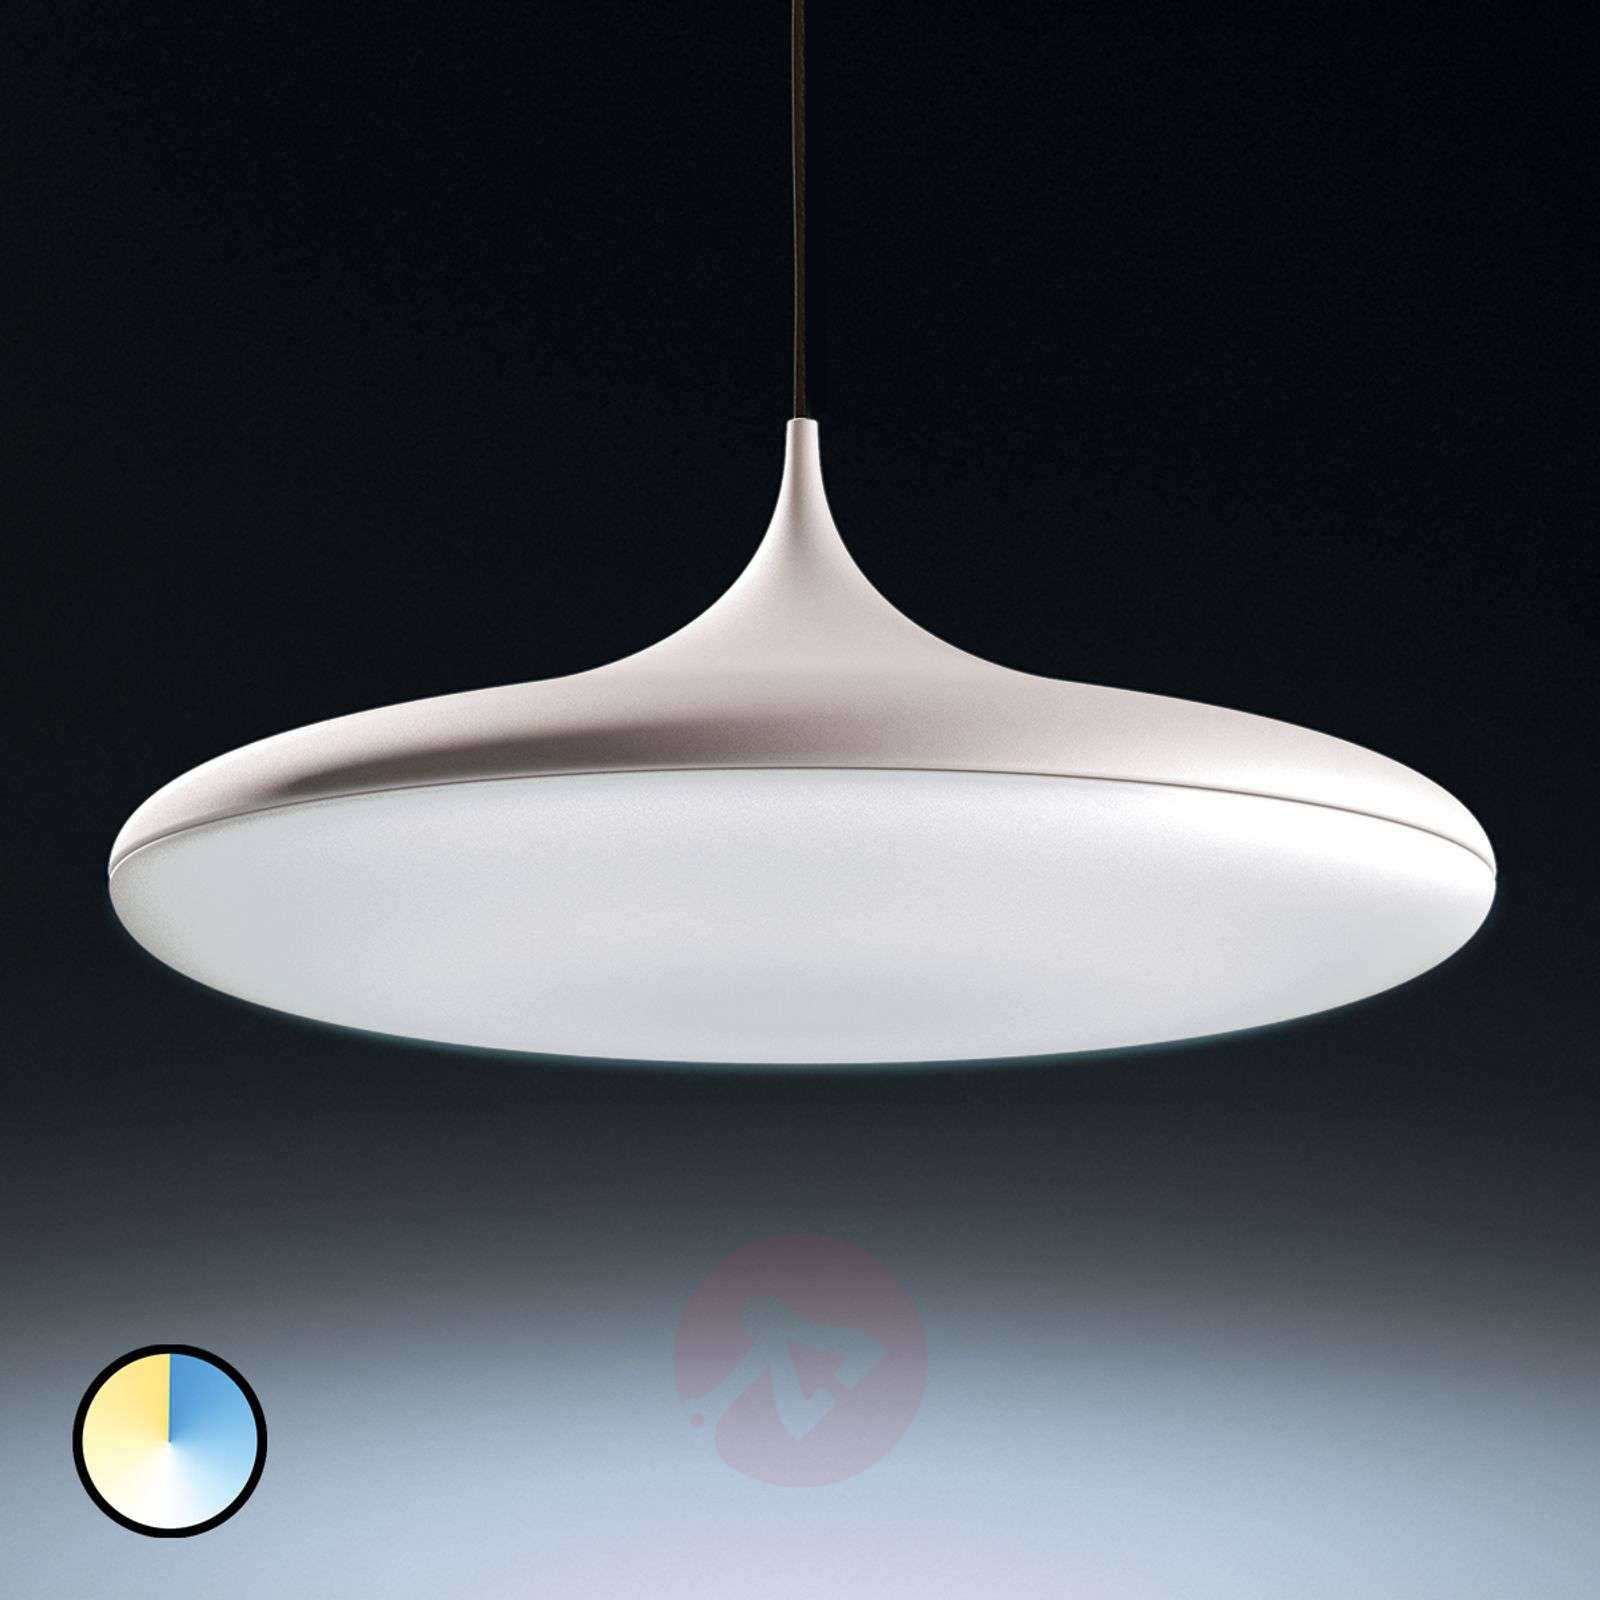 Philips Hue White Ambiance Cher suspension blanche-7532058-010